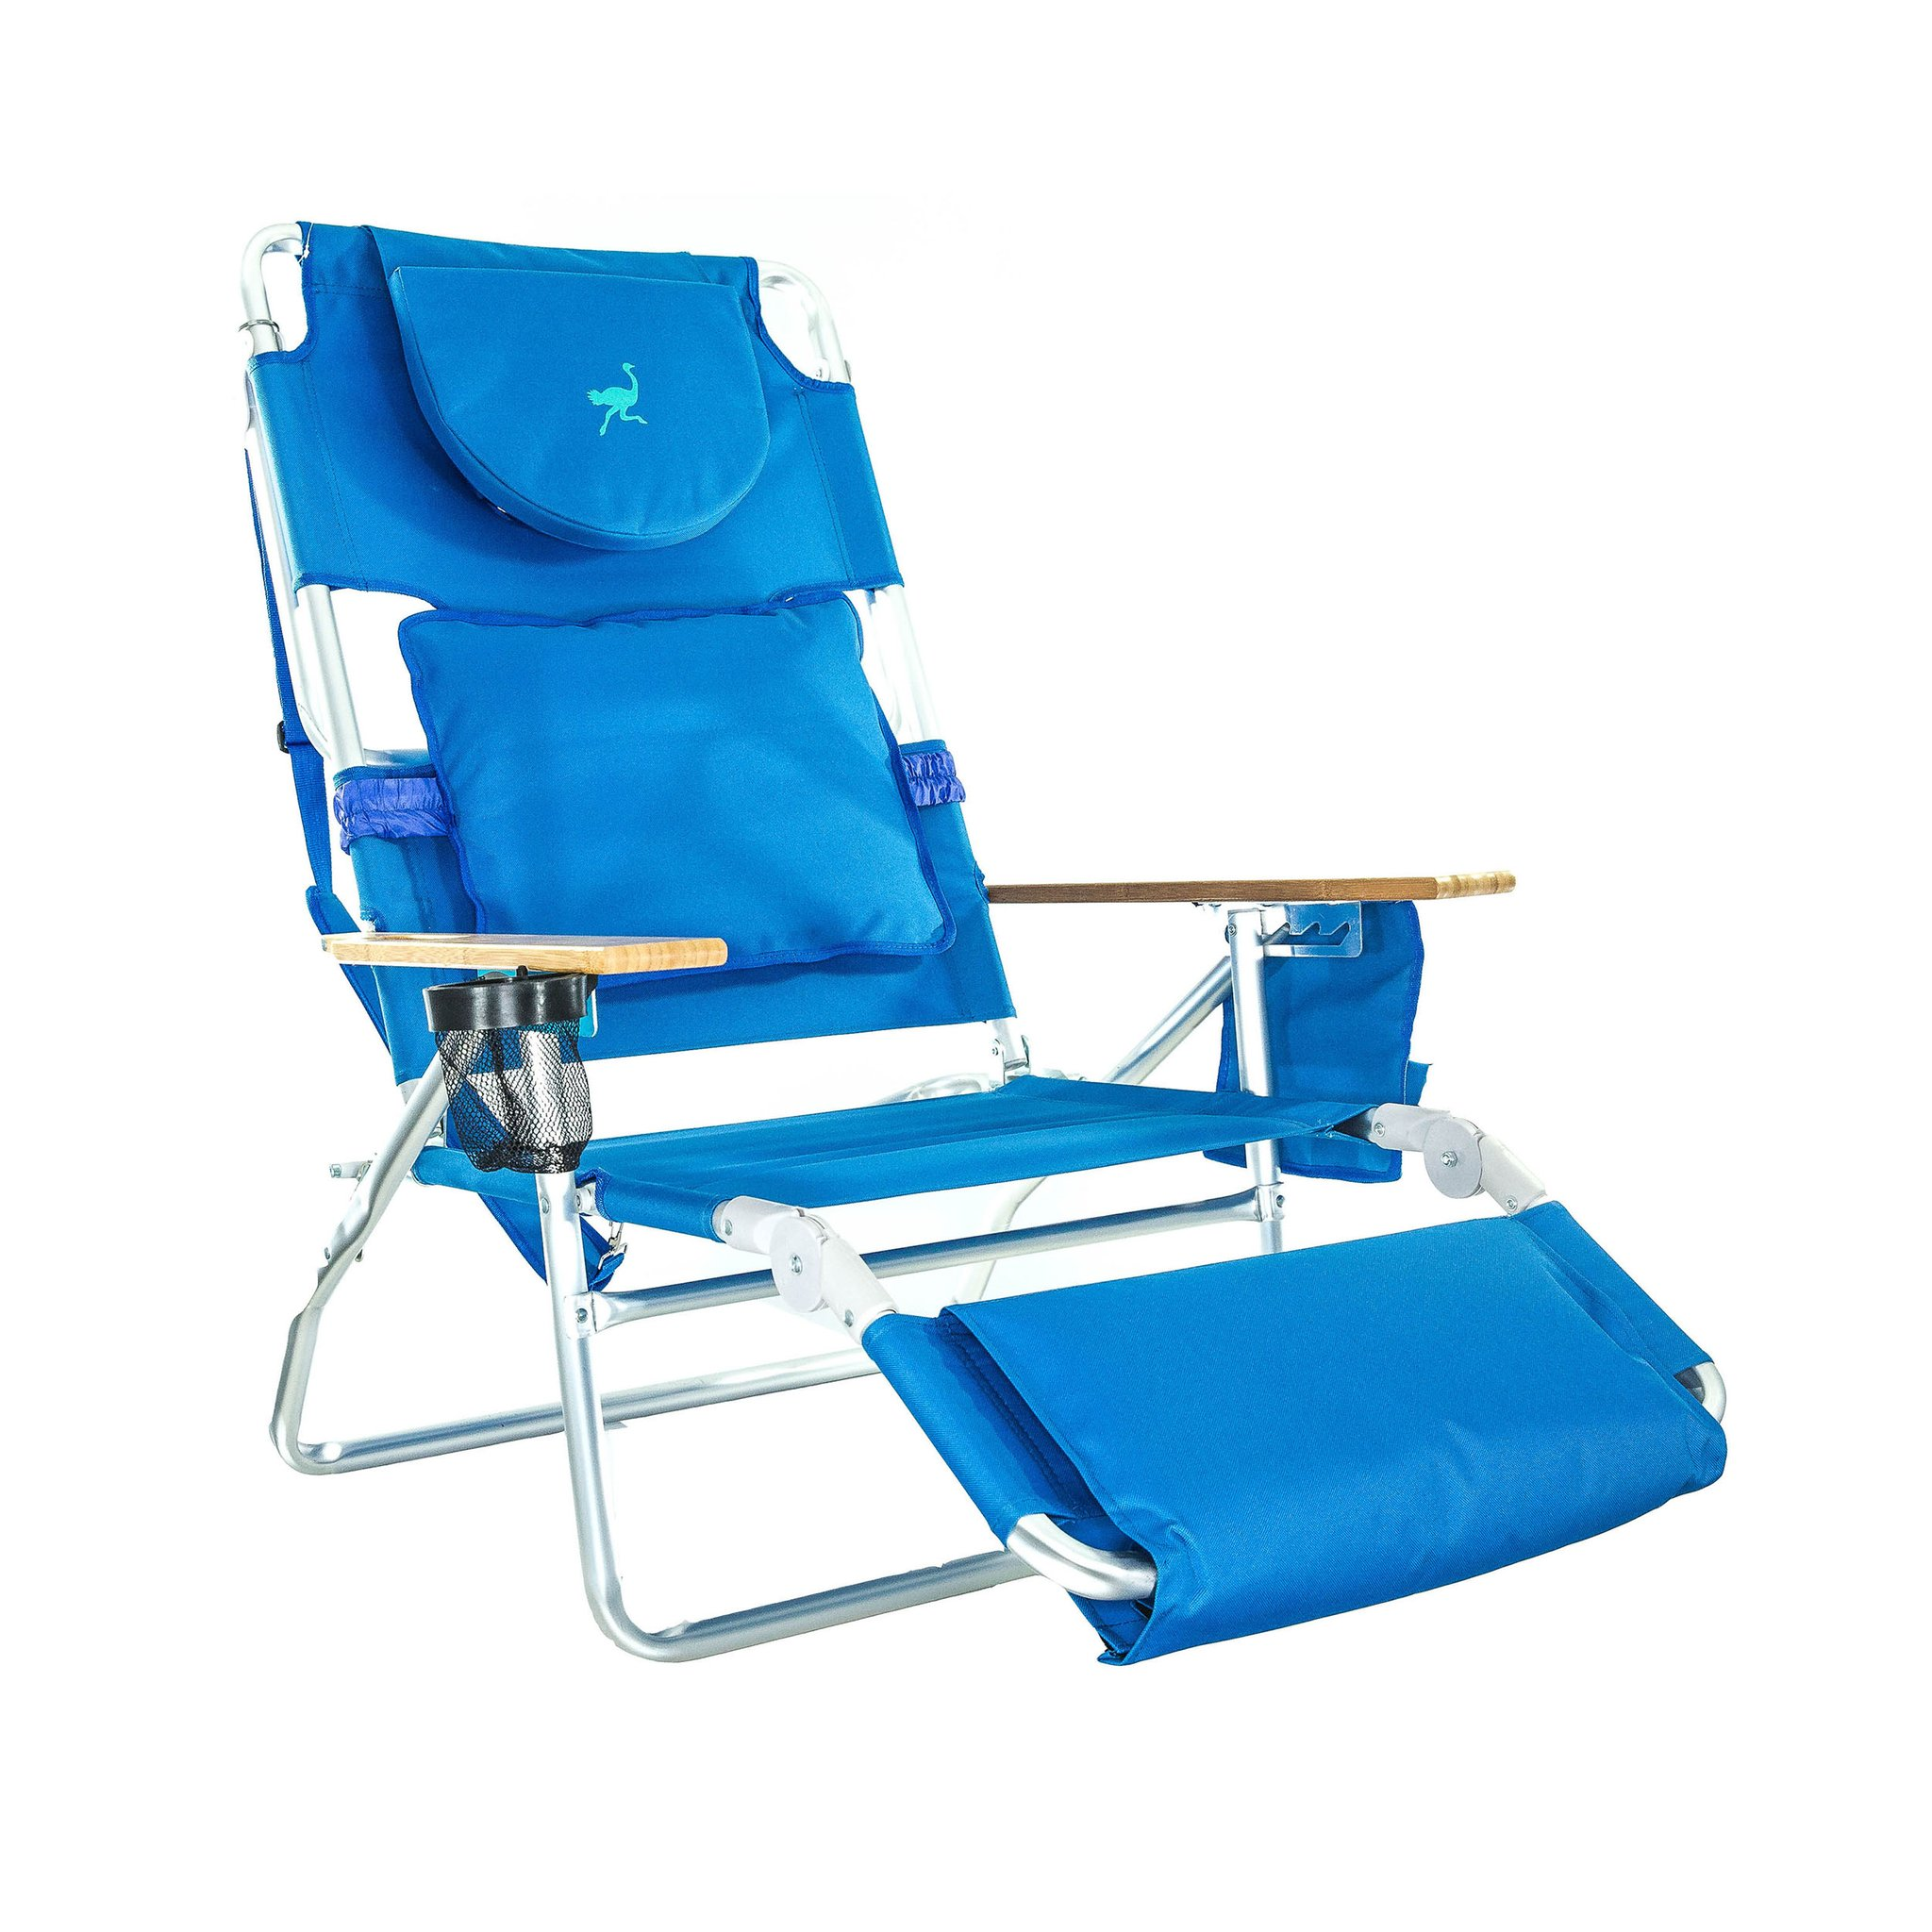 Wondrous Details About Ostrich Deluxe Padded 3 N 1 Outdoor Lounge Reclining Beach Chair Solid Blue Creativecarmelina Interior Chair Design Creativecarmelinacom